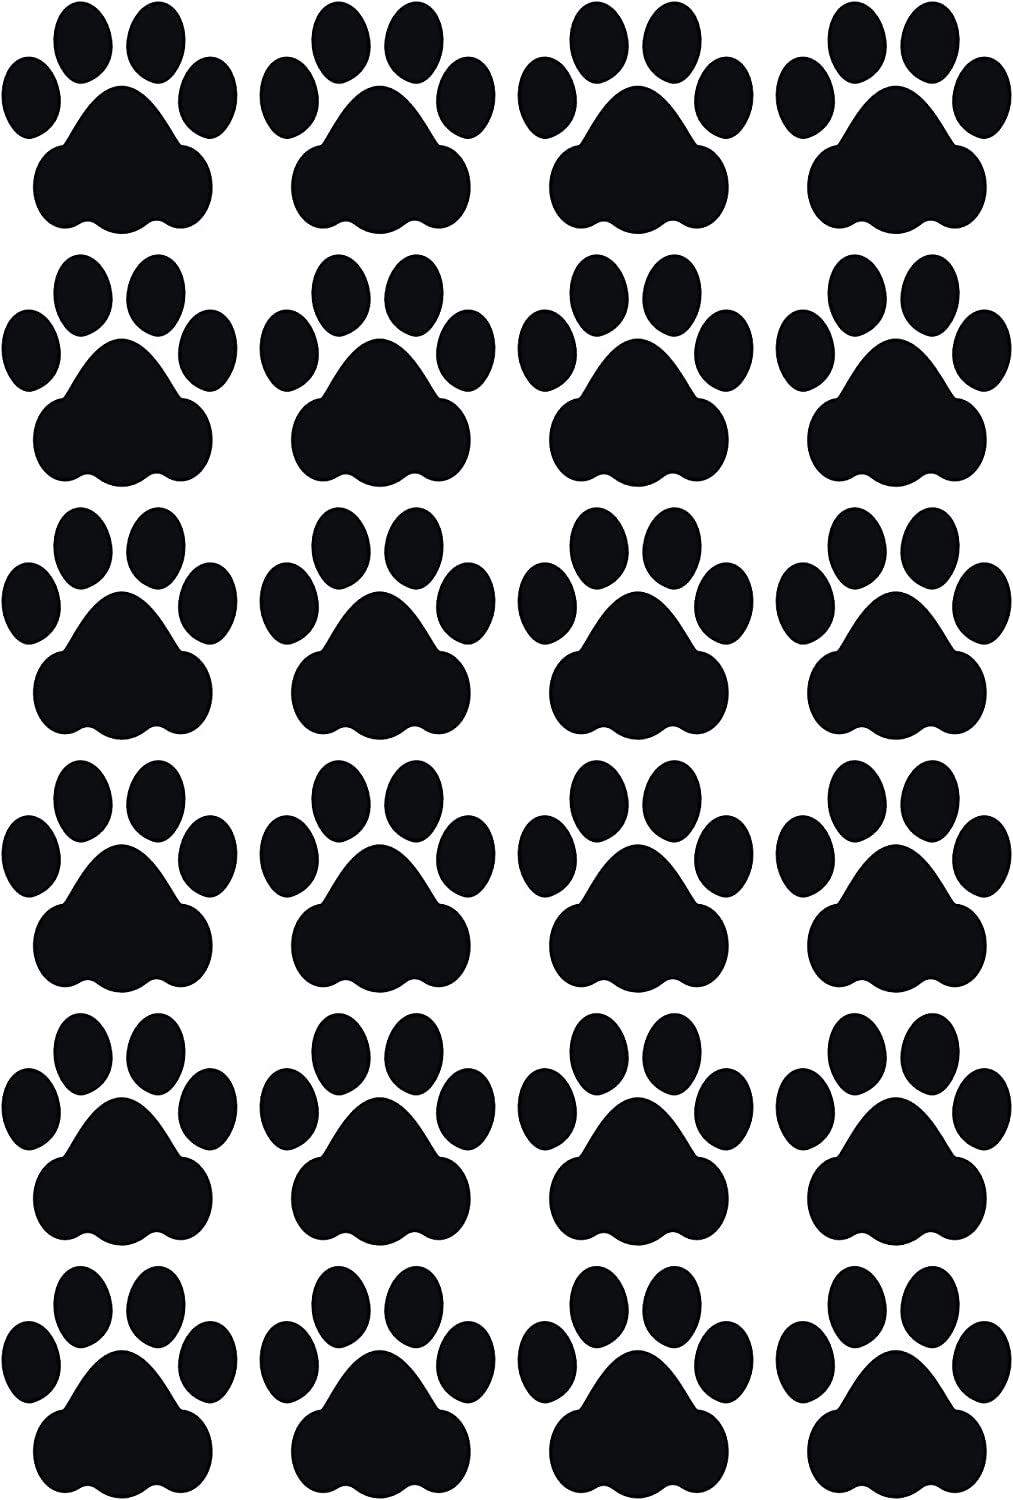 LiteMark Durable 3 Inch Dog Paw Print Decals | Floors Walls |Gloss Black (Pack of 24 Paw Prints)